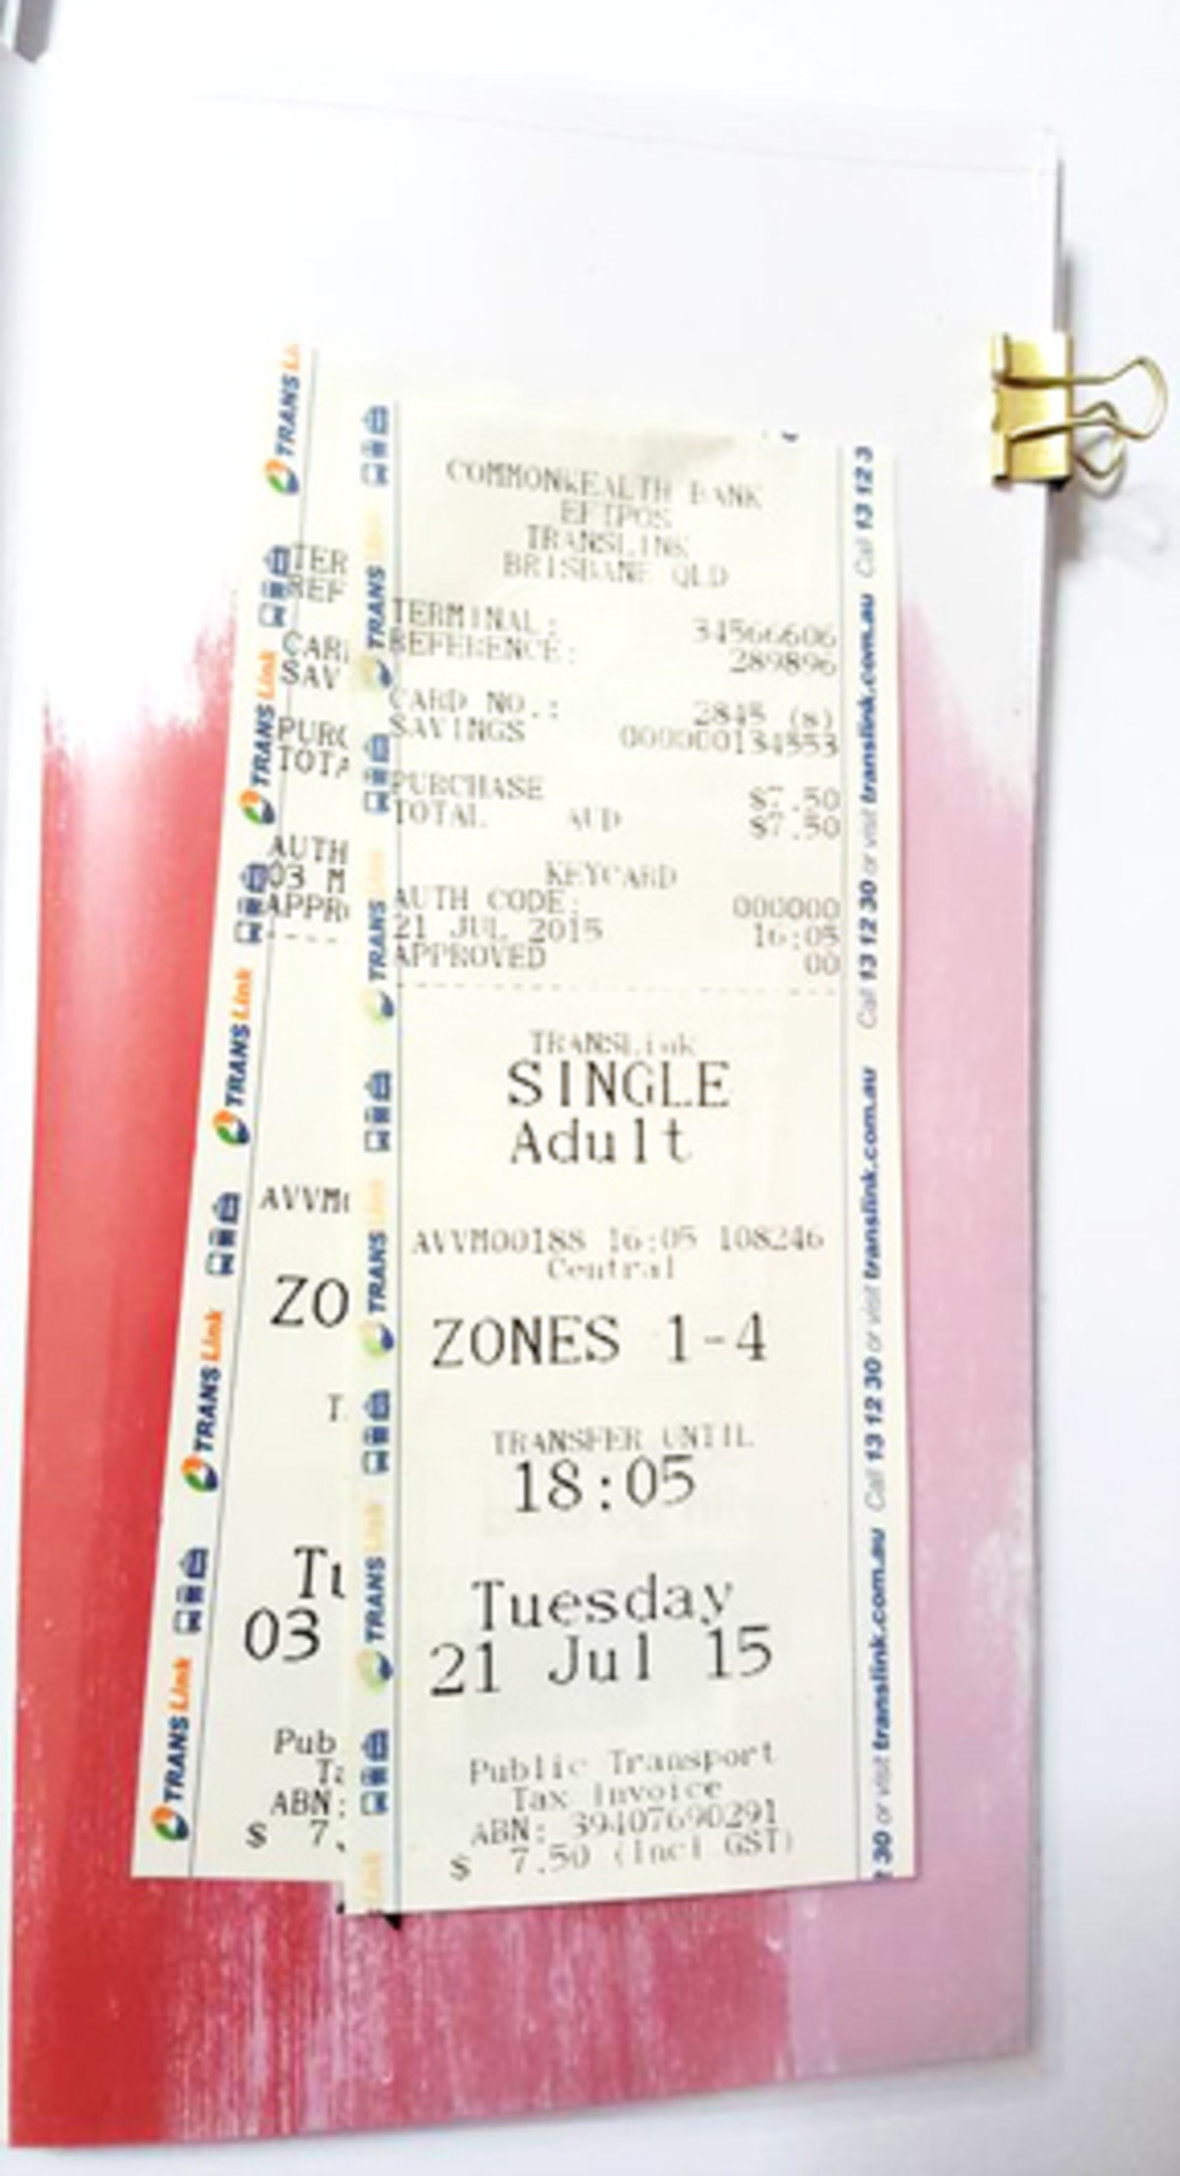 Tickets in page prot original